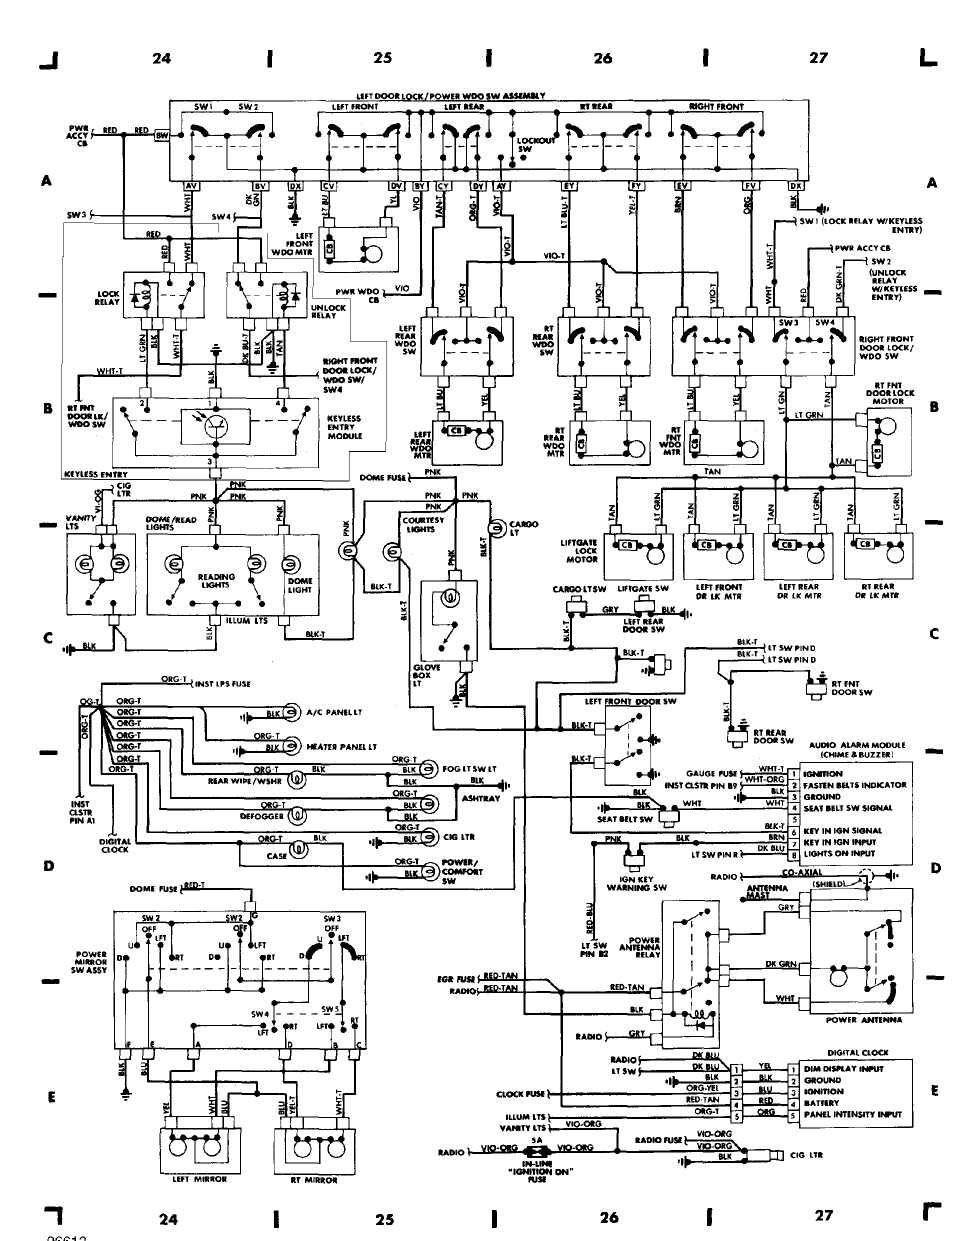 wiring_diagrams_html_61f5e0ad wiring diagrams 1984 1991 jeep cherokee (xj) jeep 1989 jeep cherokee fuse box diagram at crackthecode.co